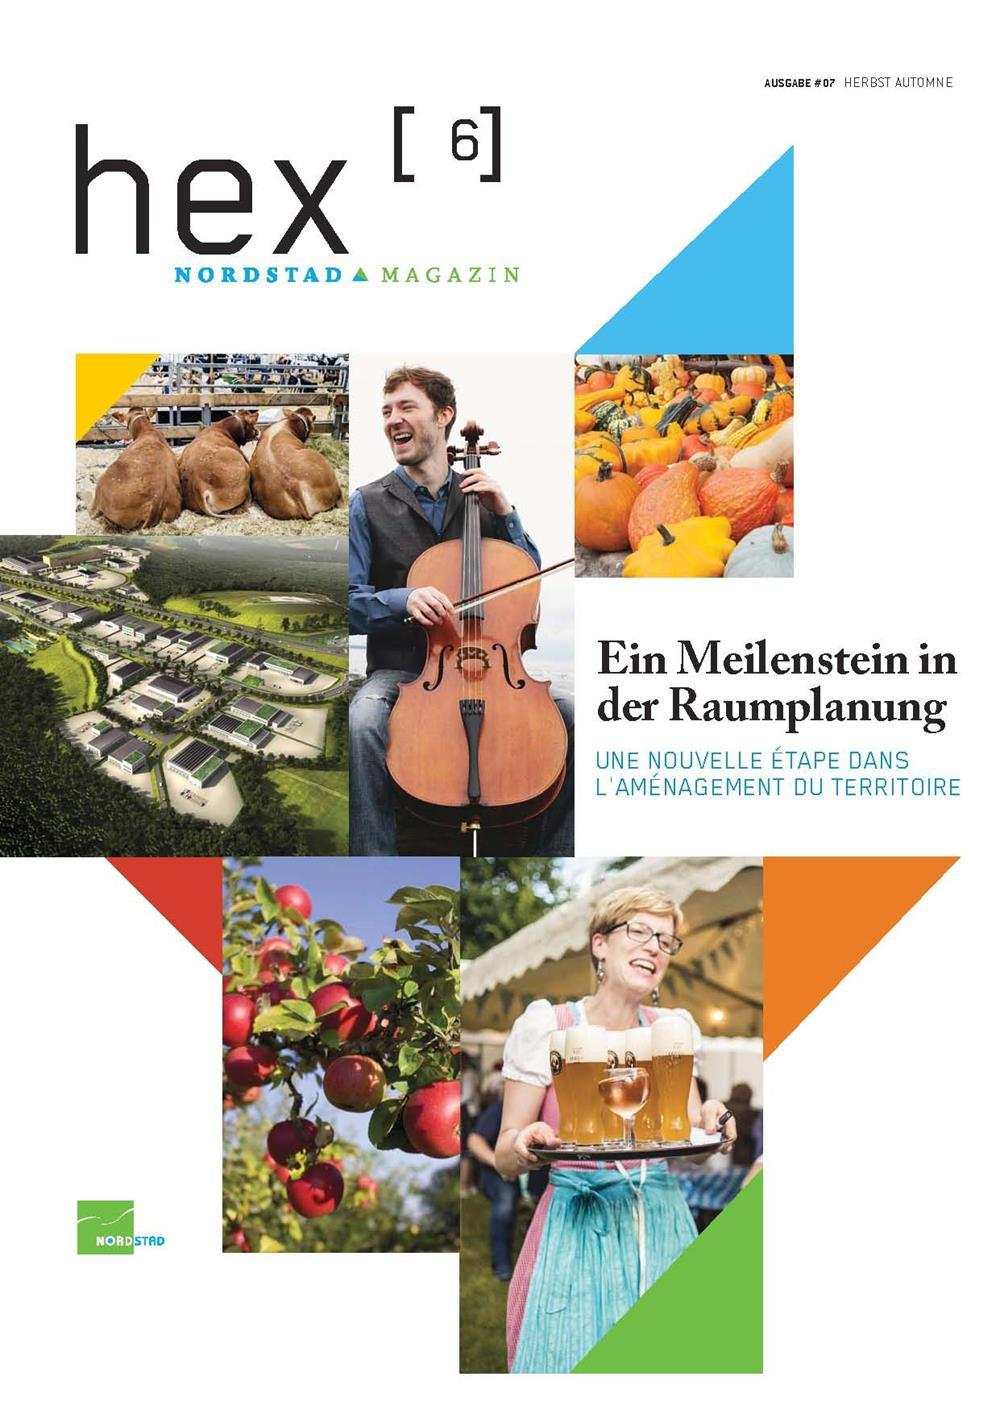 Hex7 - Hex #7 Herbst 2016 - News